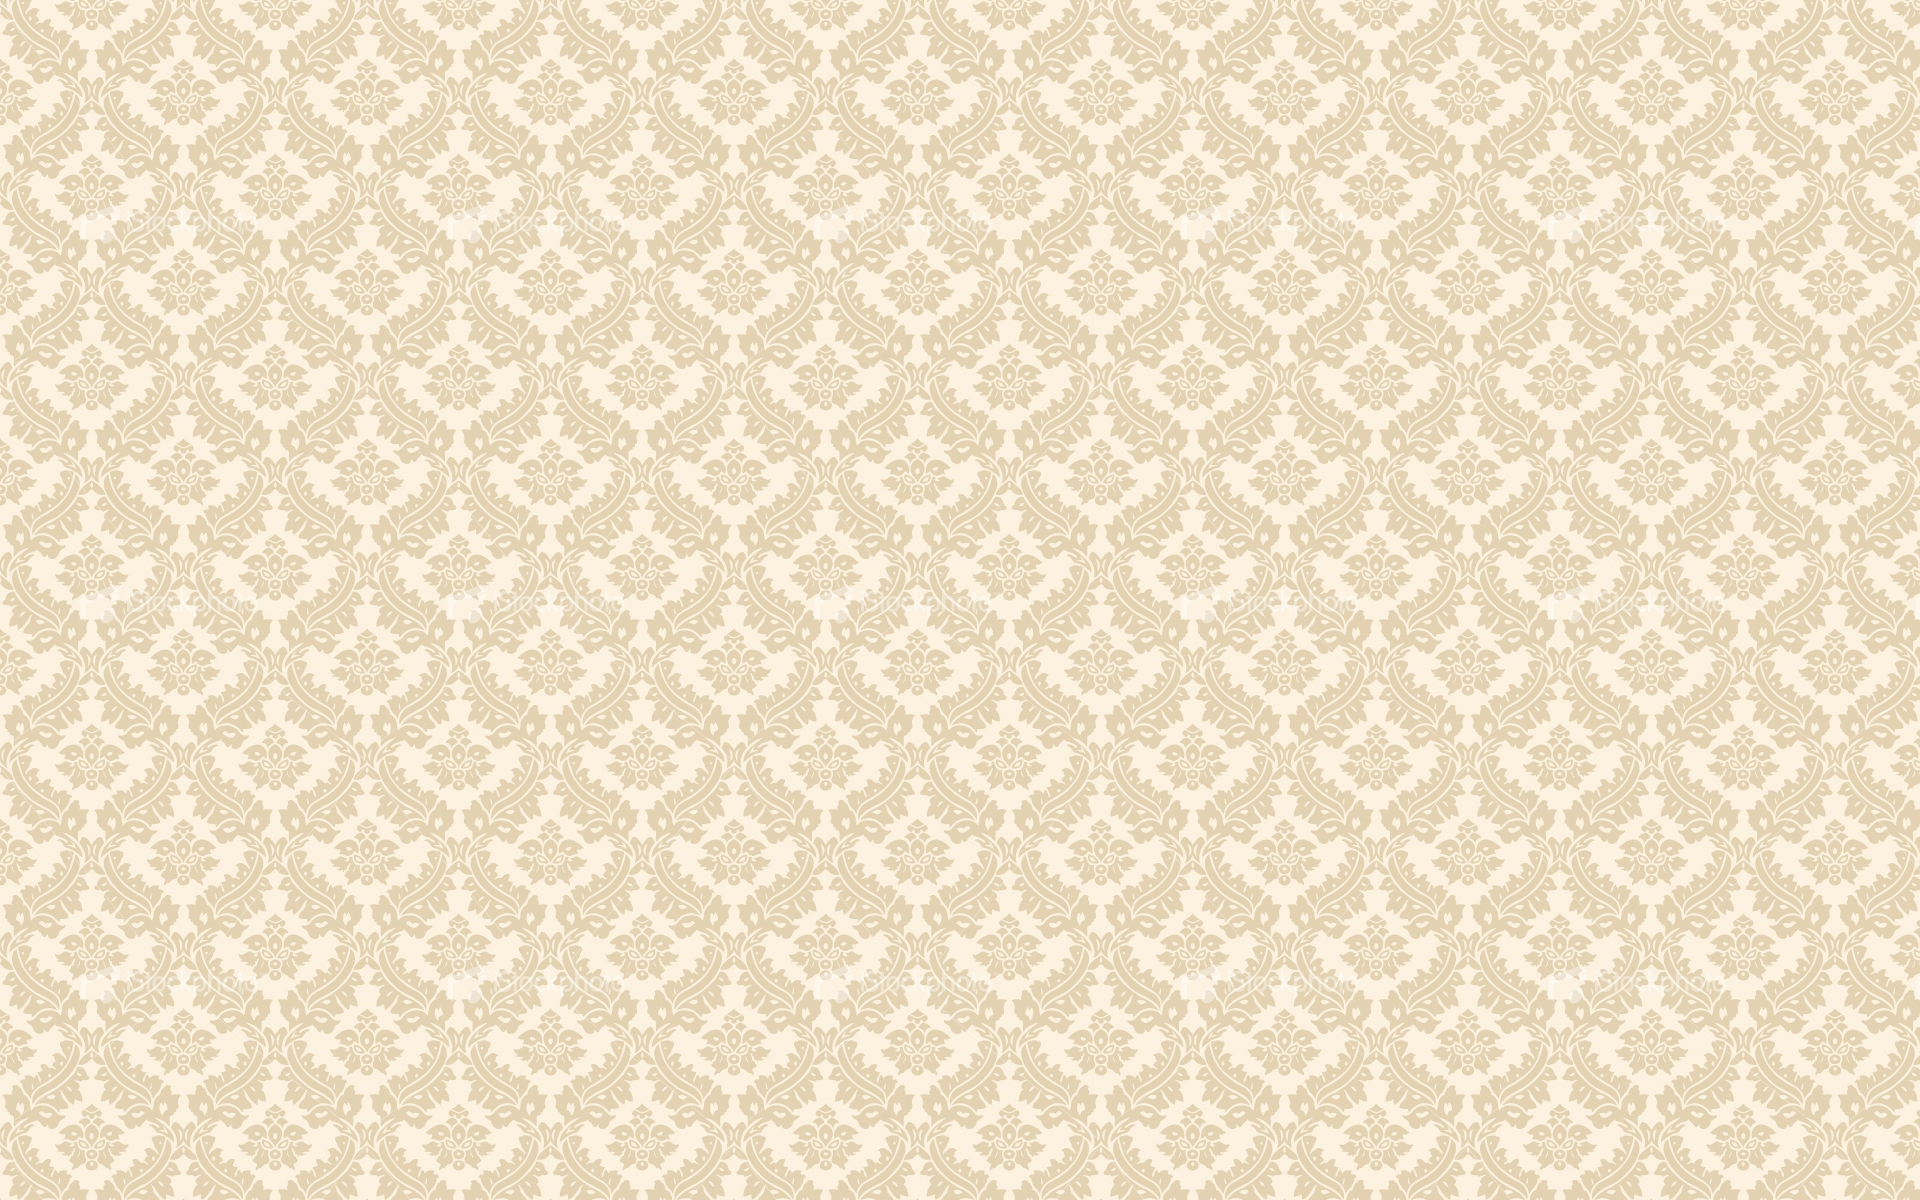 Floral wallpaper brown art iriname   832998 1920x1200